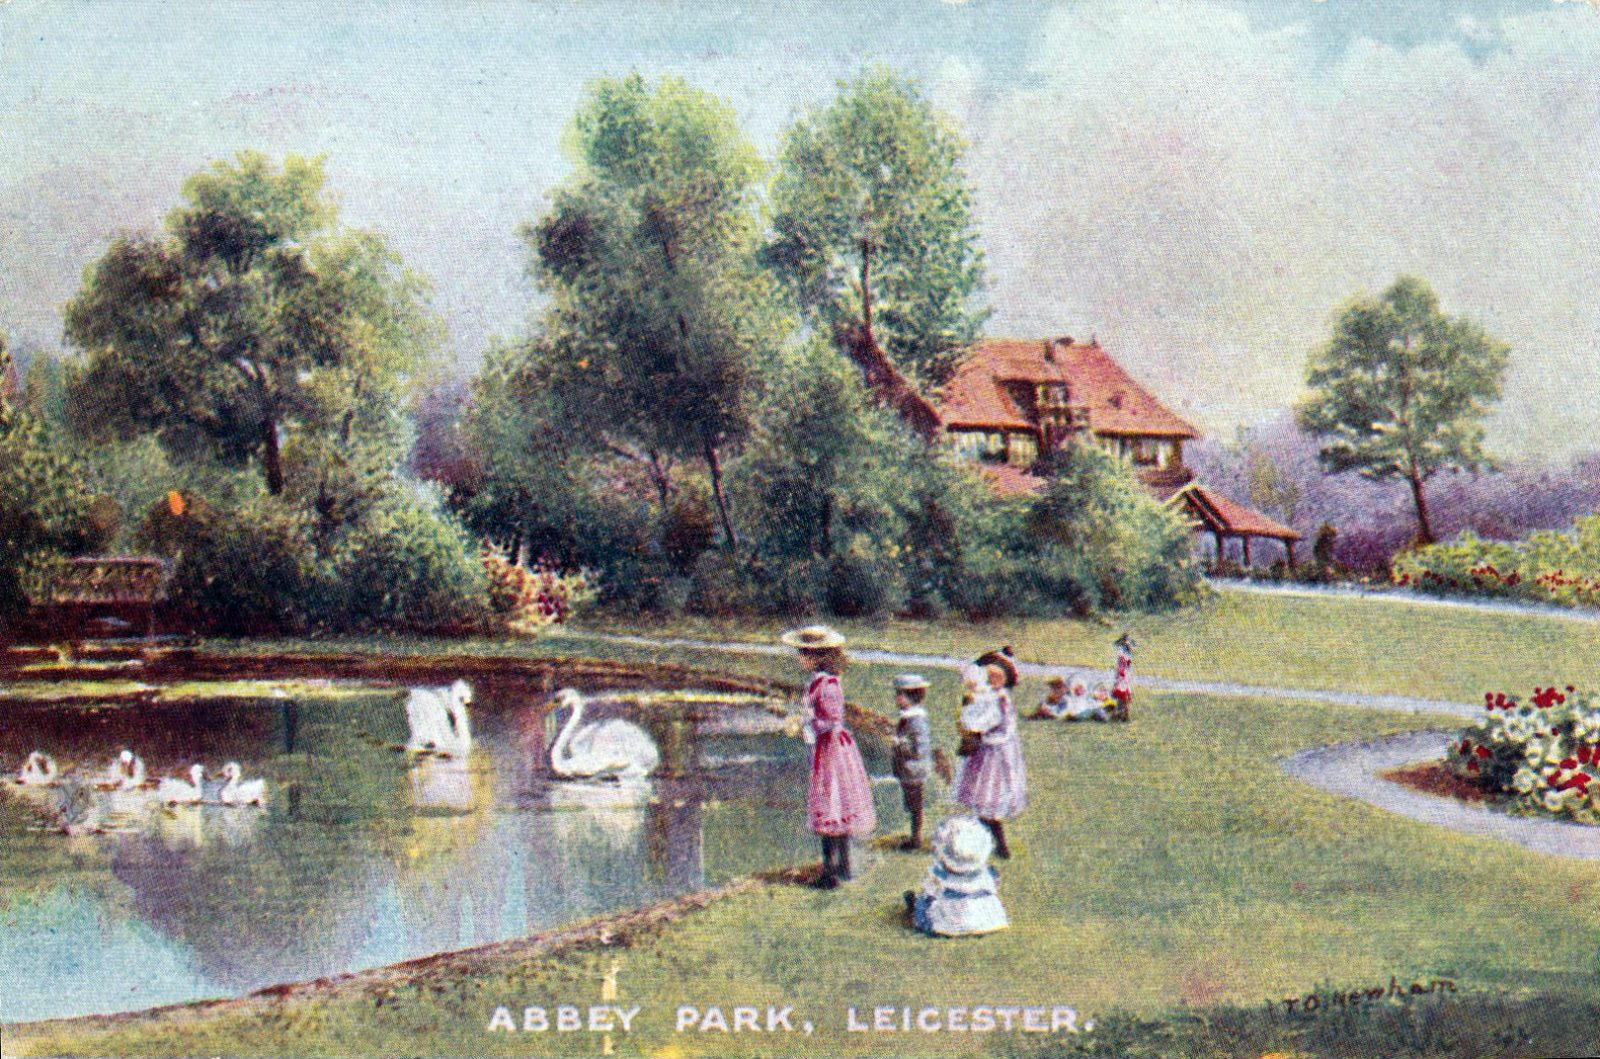 Abbey Park, Leicester. 1901-1920: The lake and pavilion with a number of children. Taken from a painting. (File:1440)